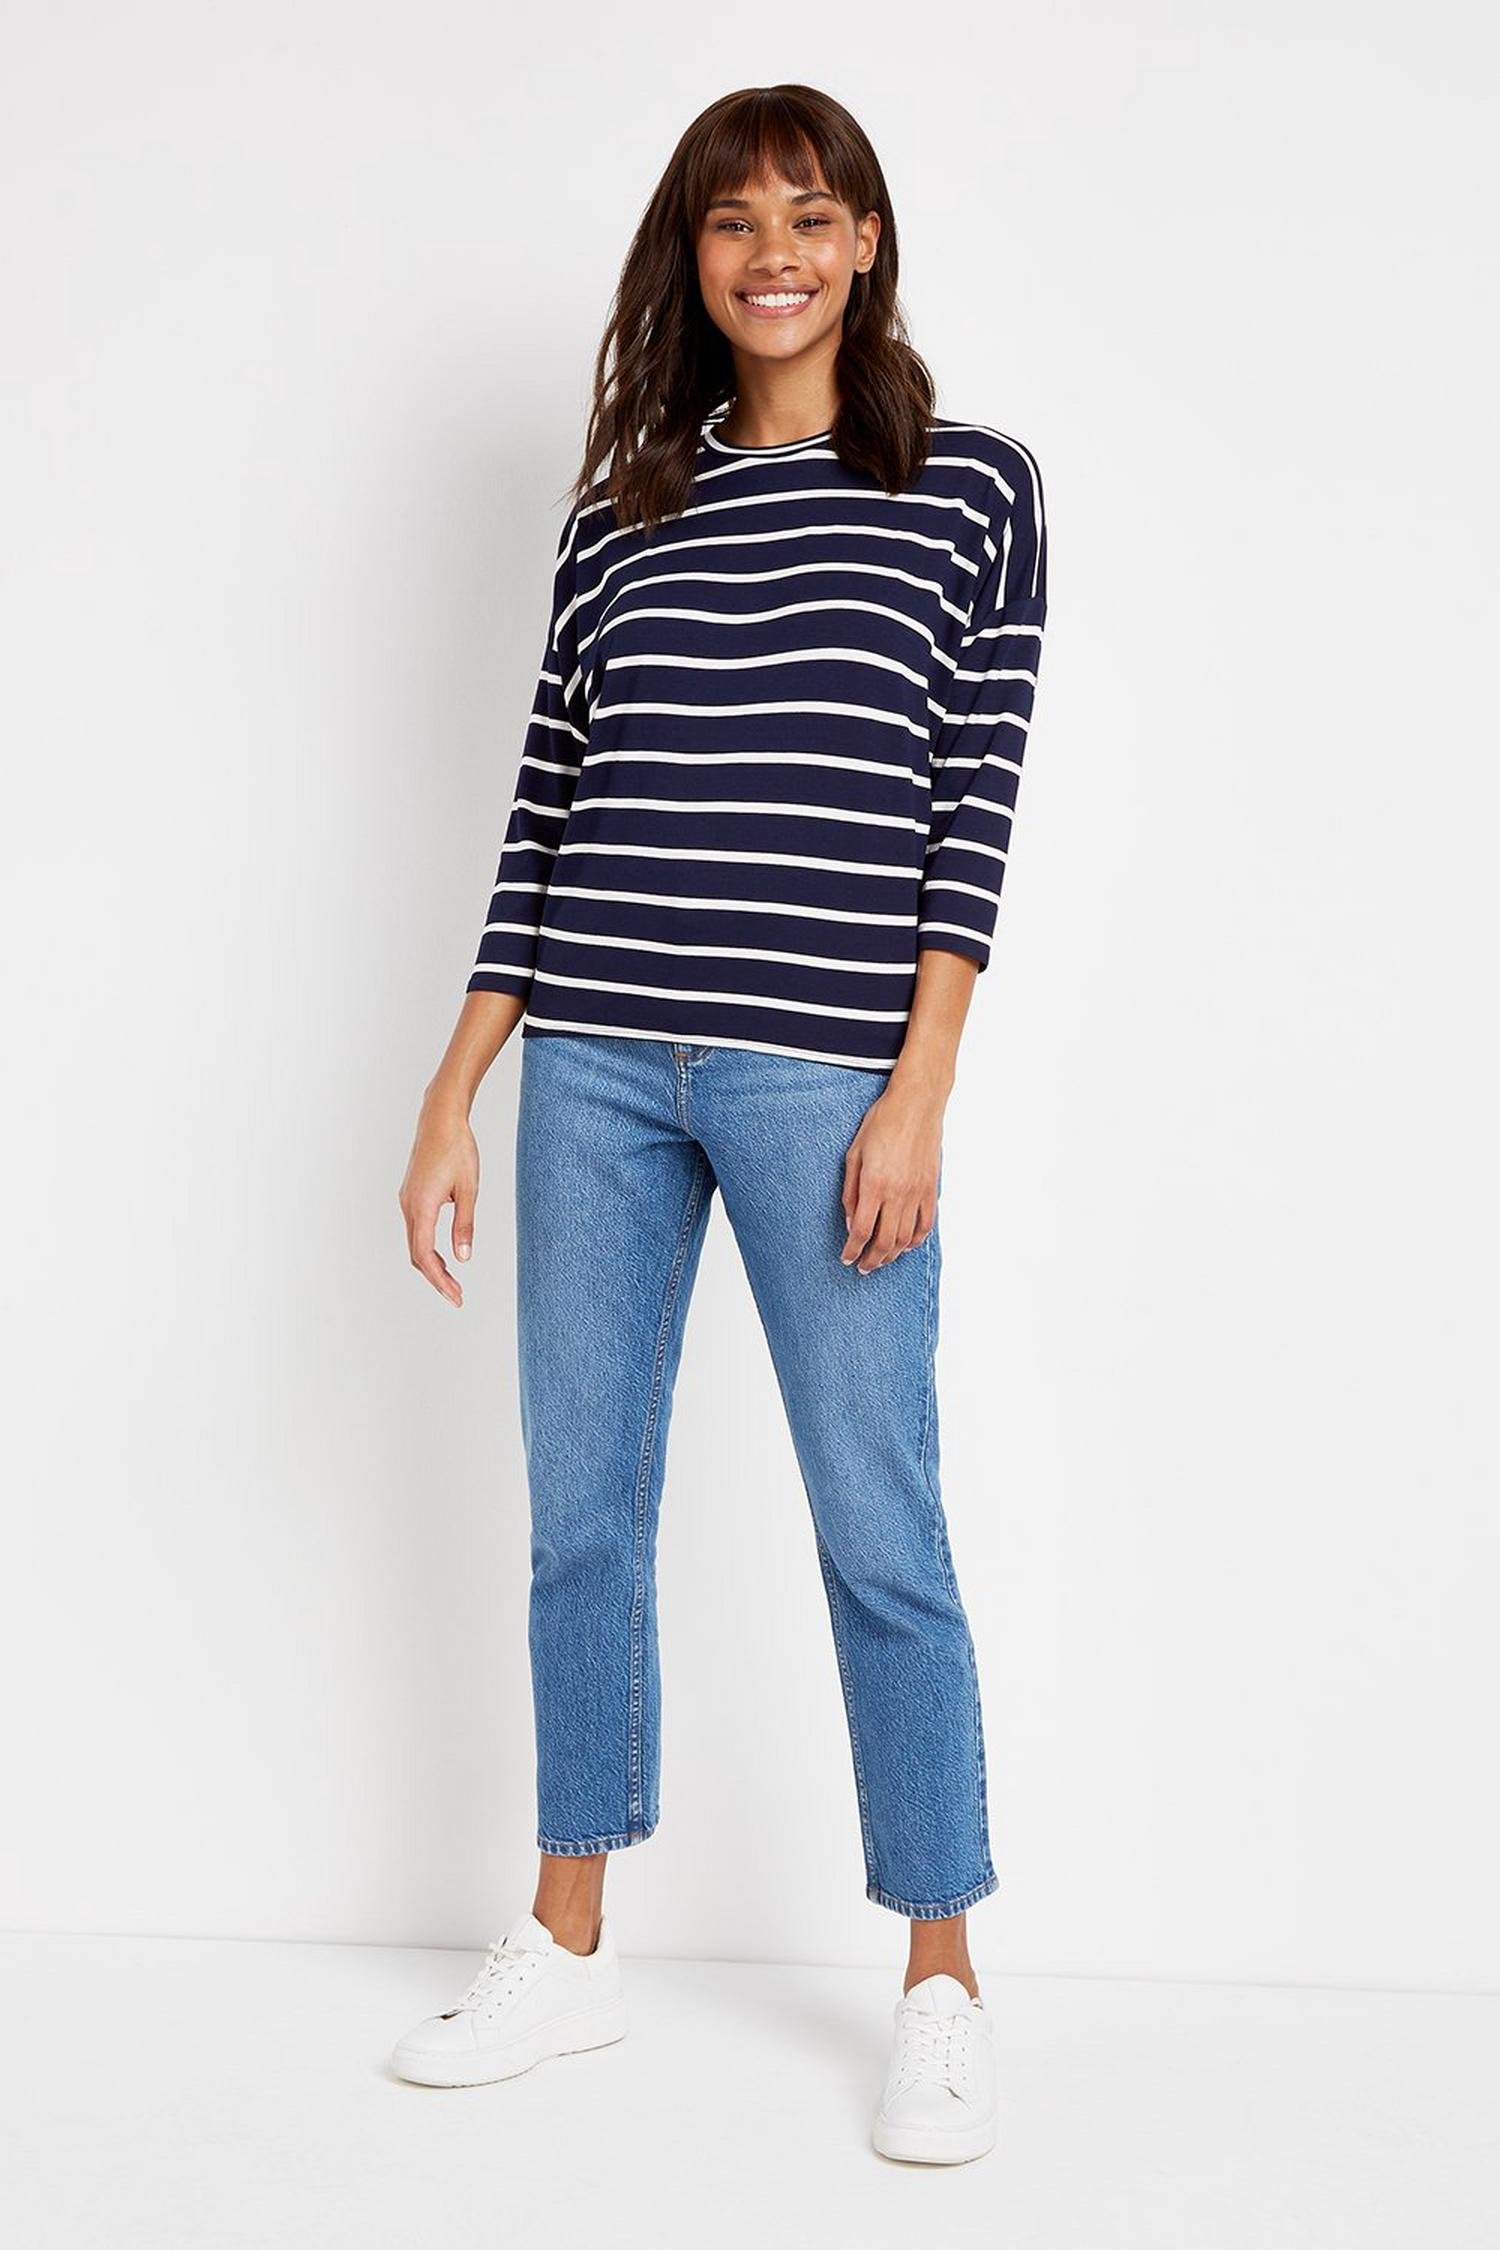 148 TALL Navy Striped Batwing Top image number 4